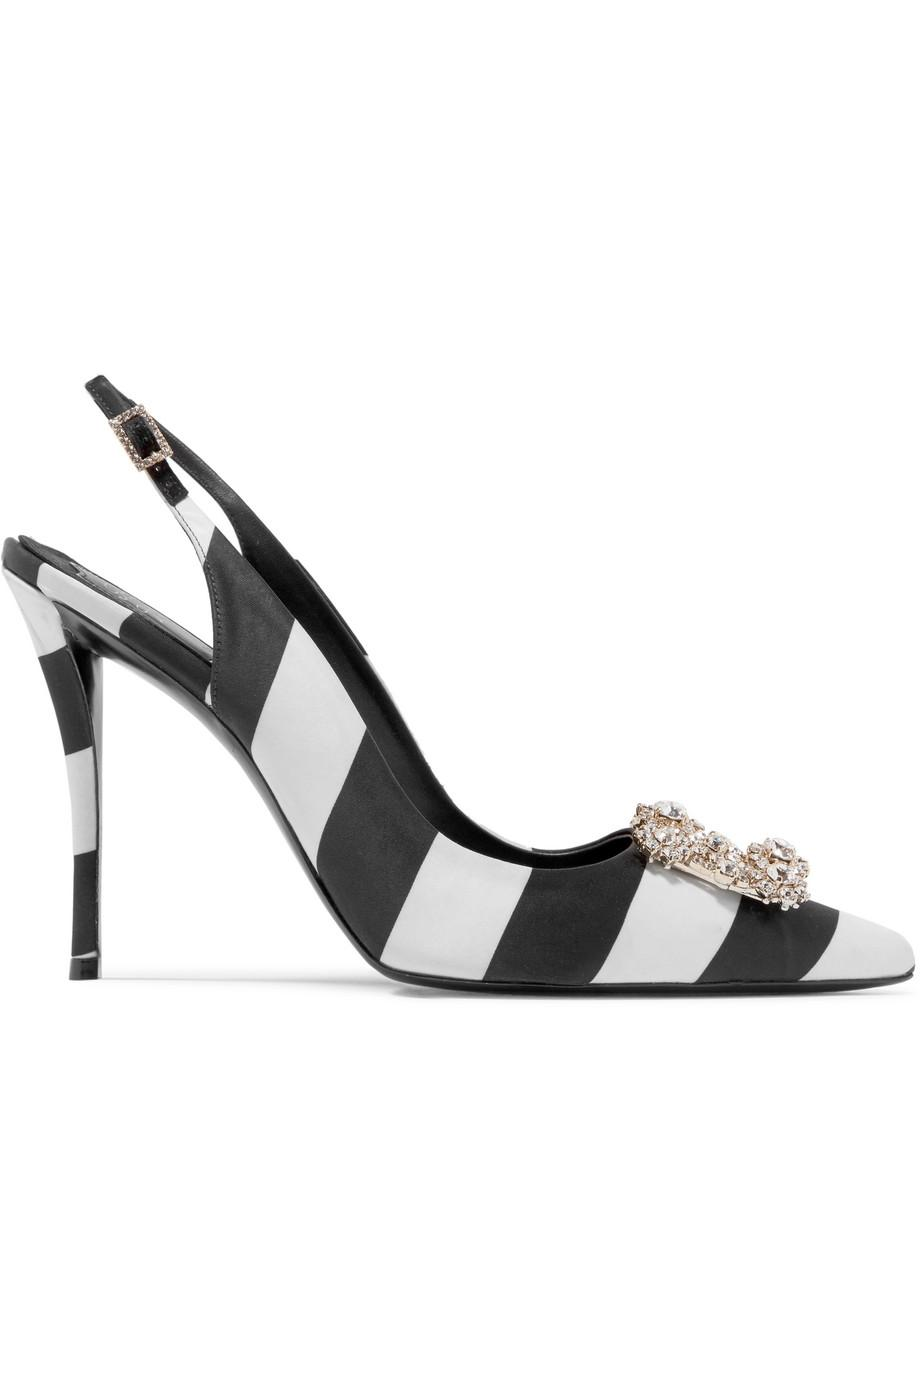 Crystal-embellished Satin Slingback Pumps - Black Roger Vivier 2FU0v9a